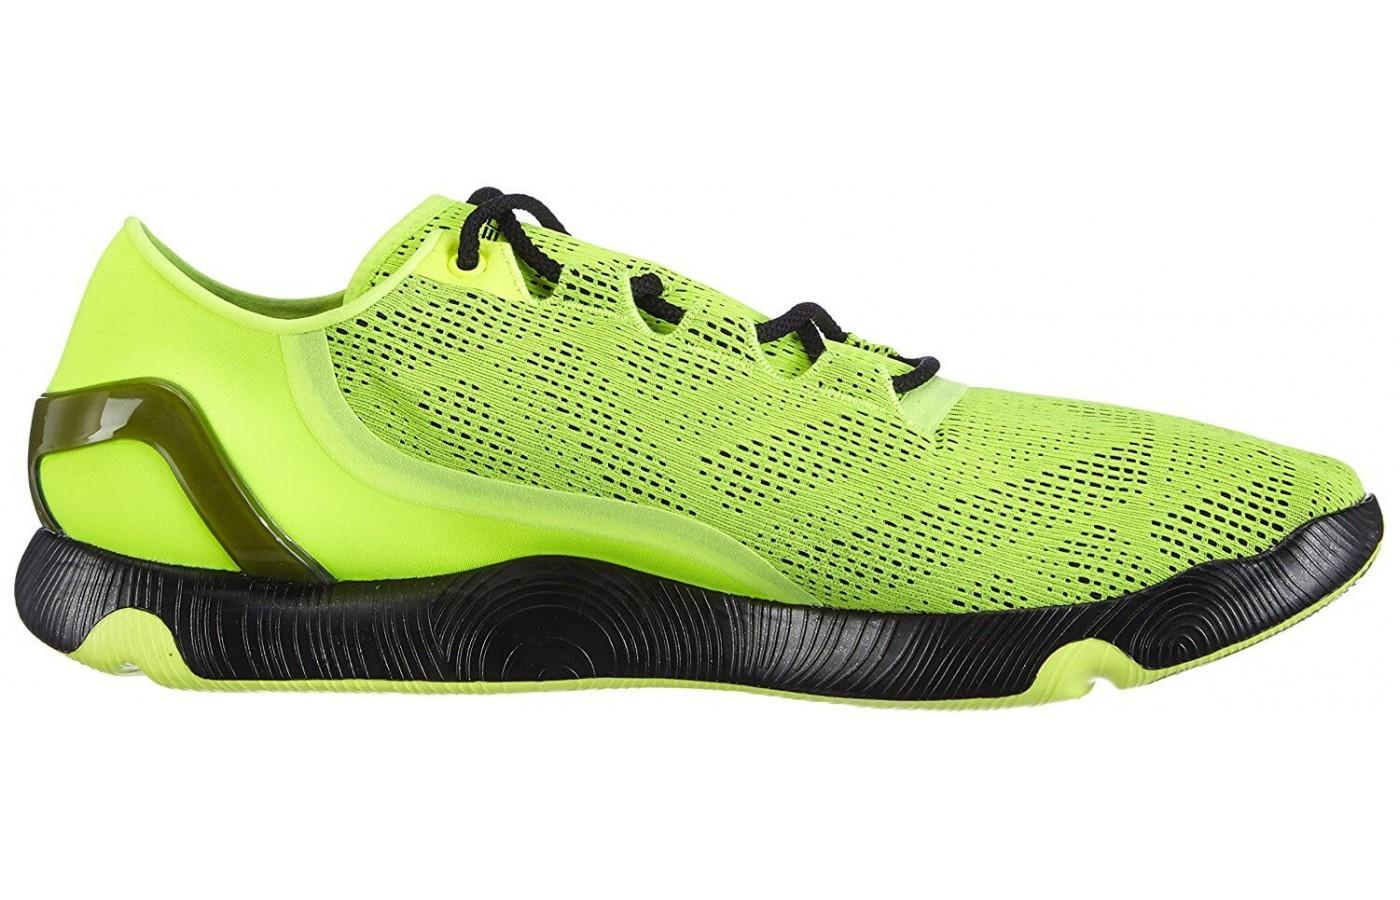 the Under Armour SpeedForm RC Vent uses bright colors